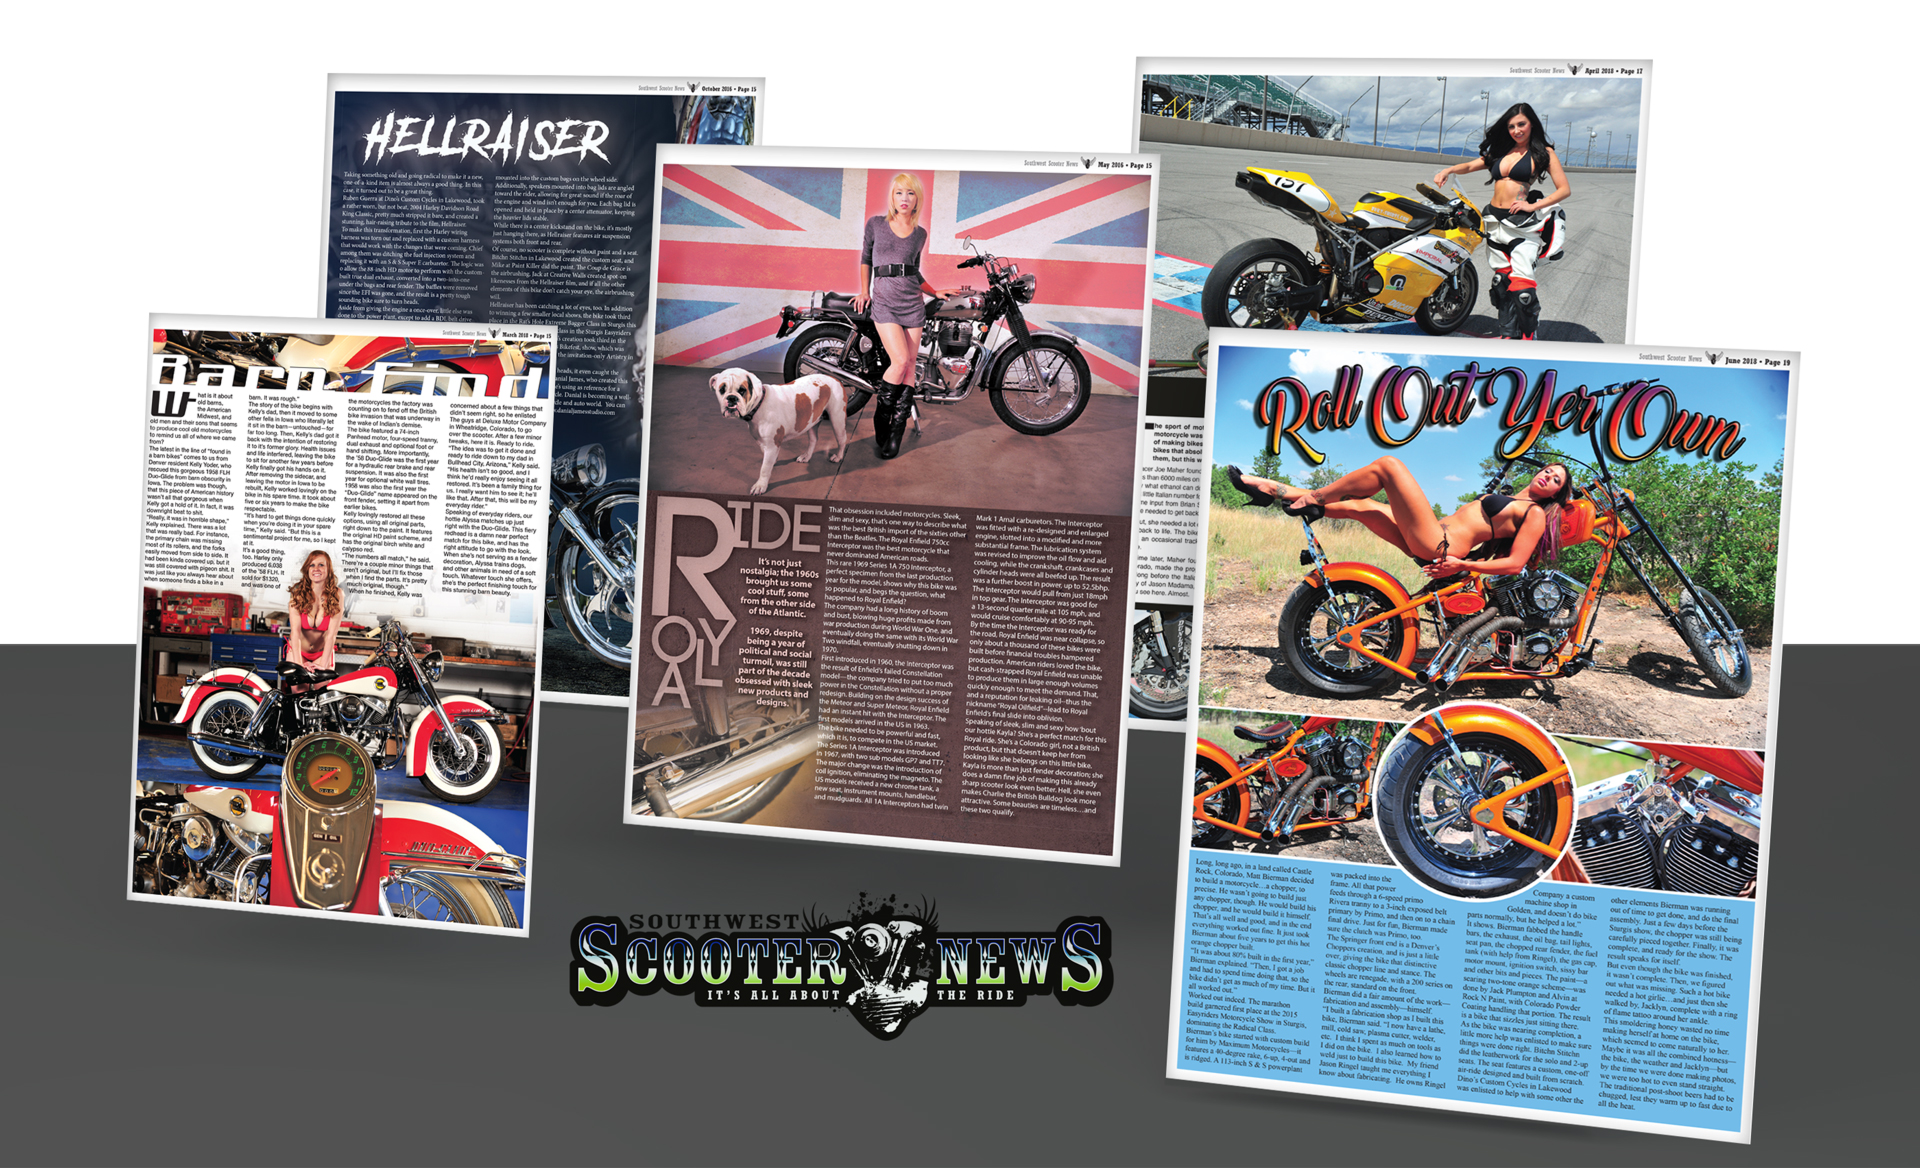 SWSN_feature-bikes